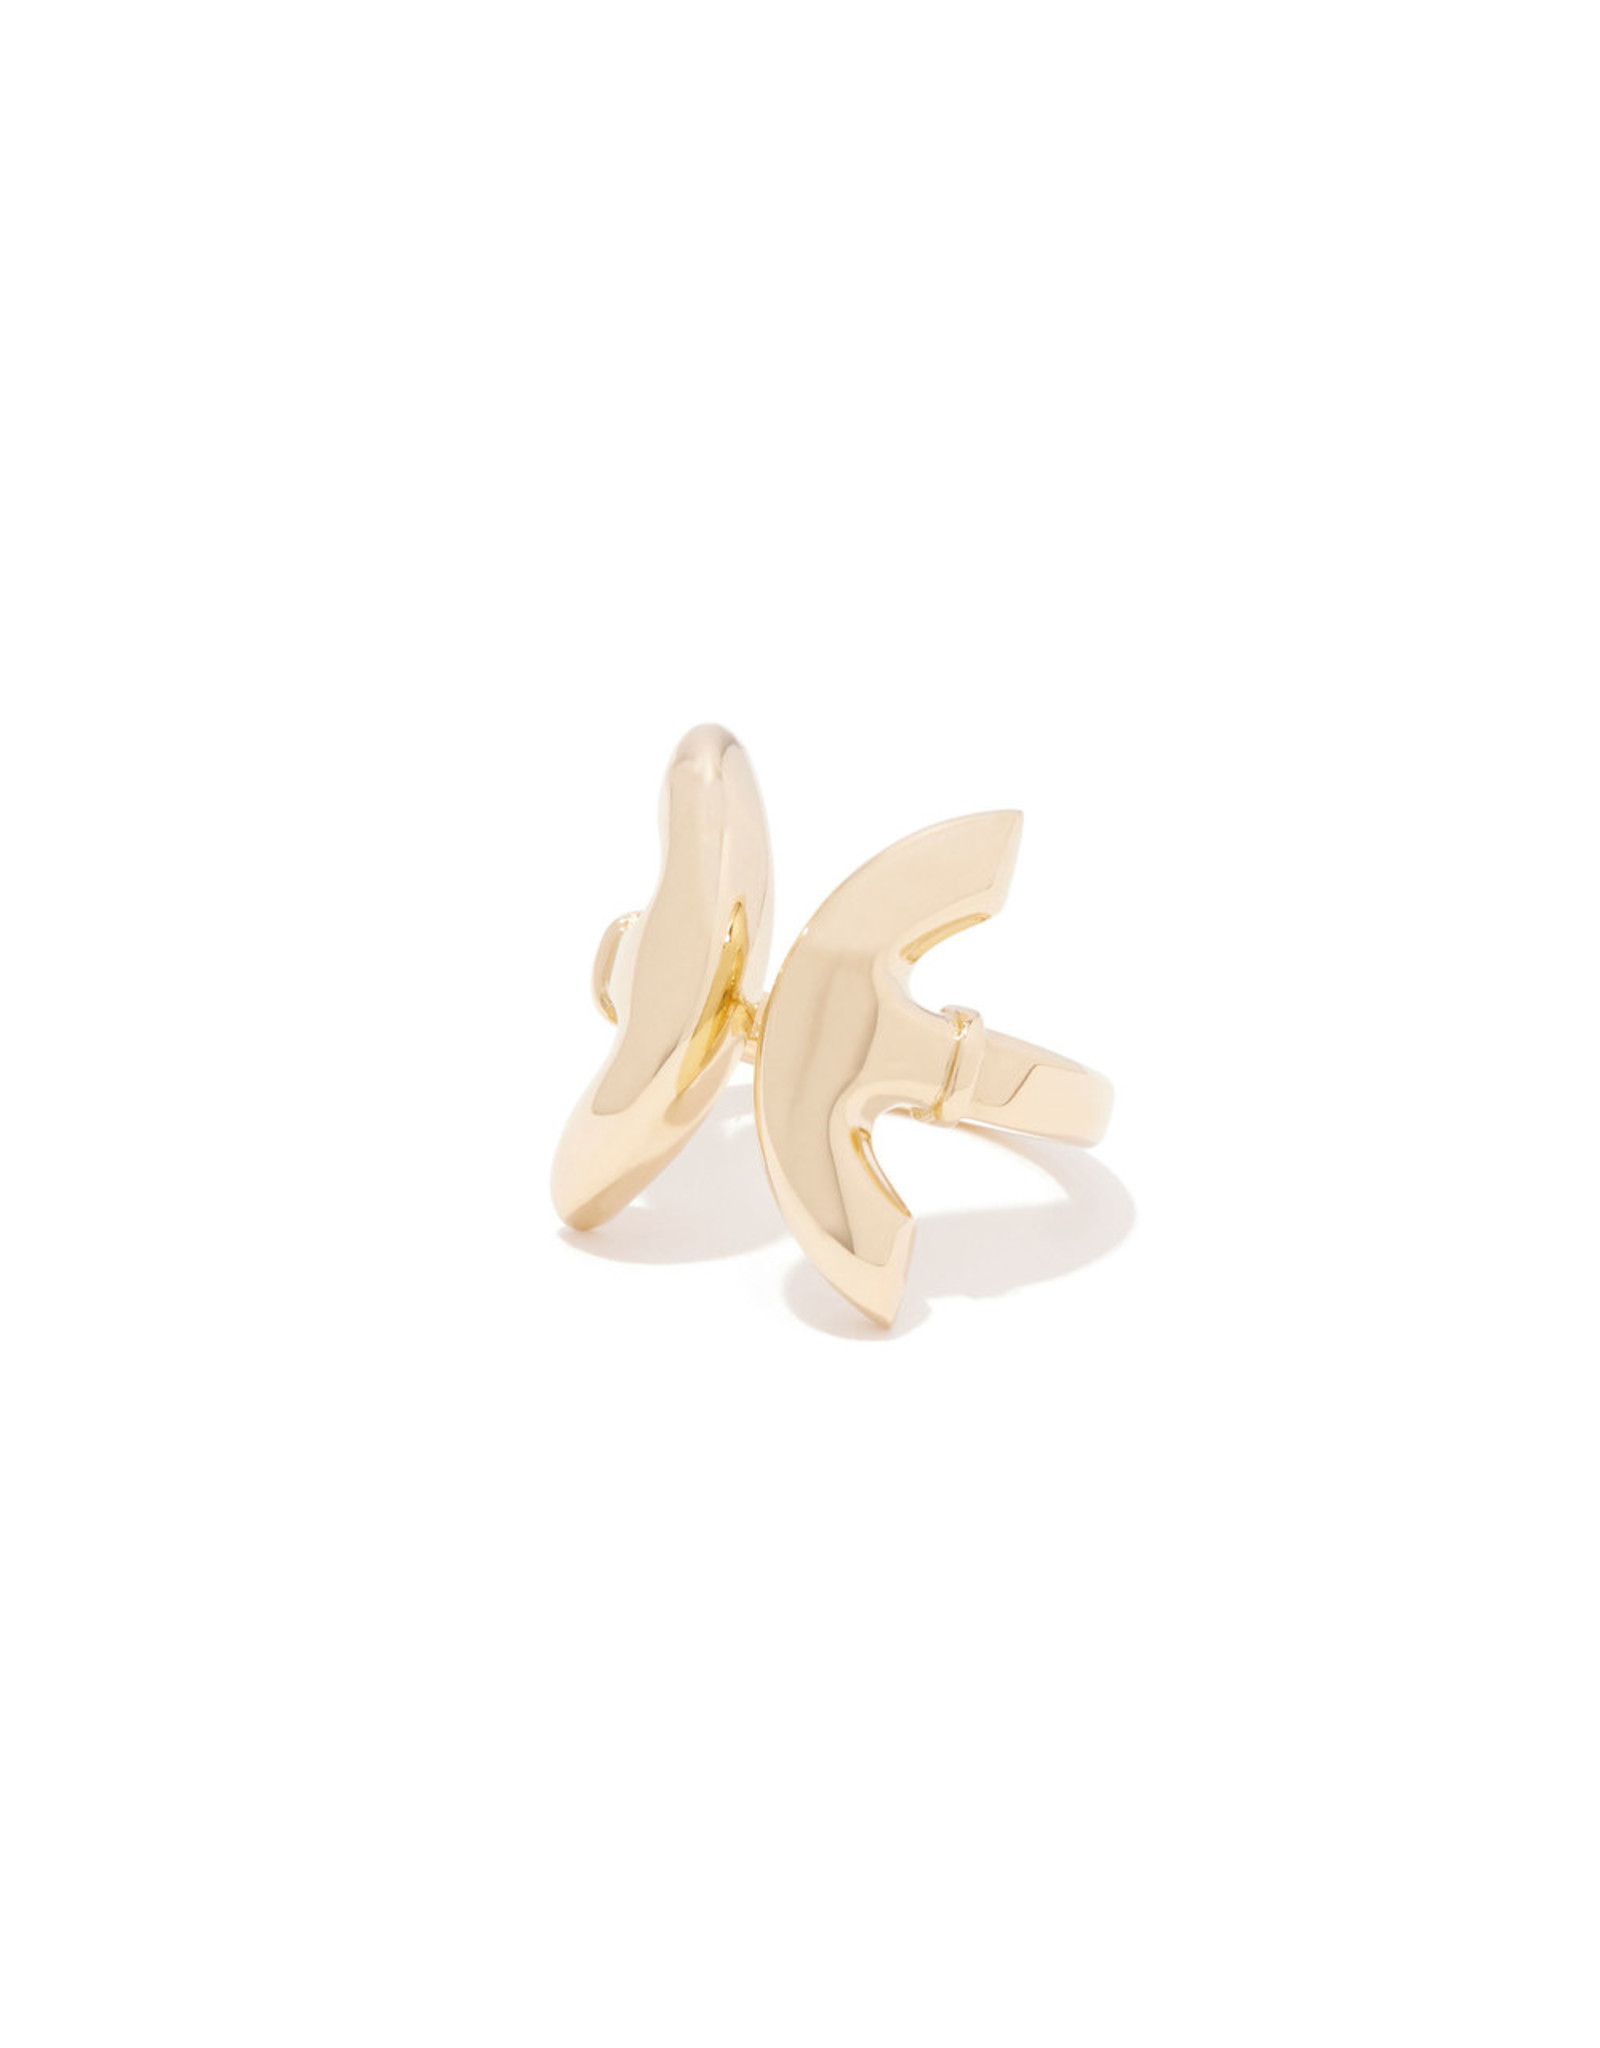 Hoorsenbuhs Hoorsenbuhs Revere Ring (Size: 6, Color: Yellow Gold)